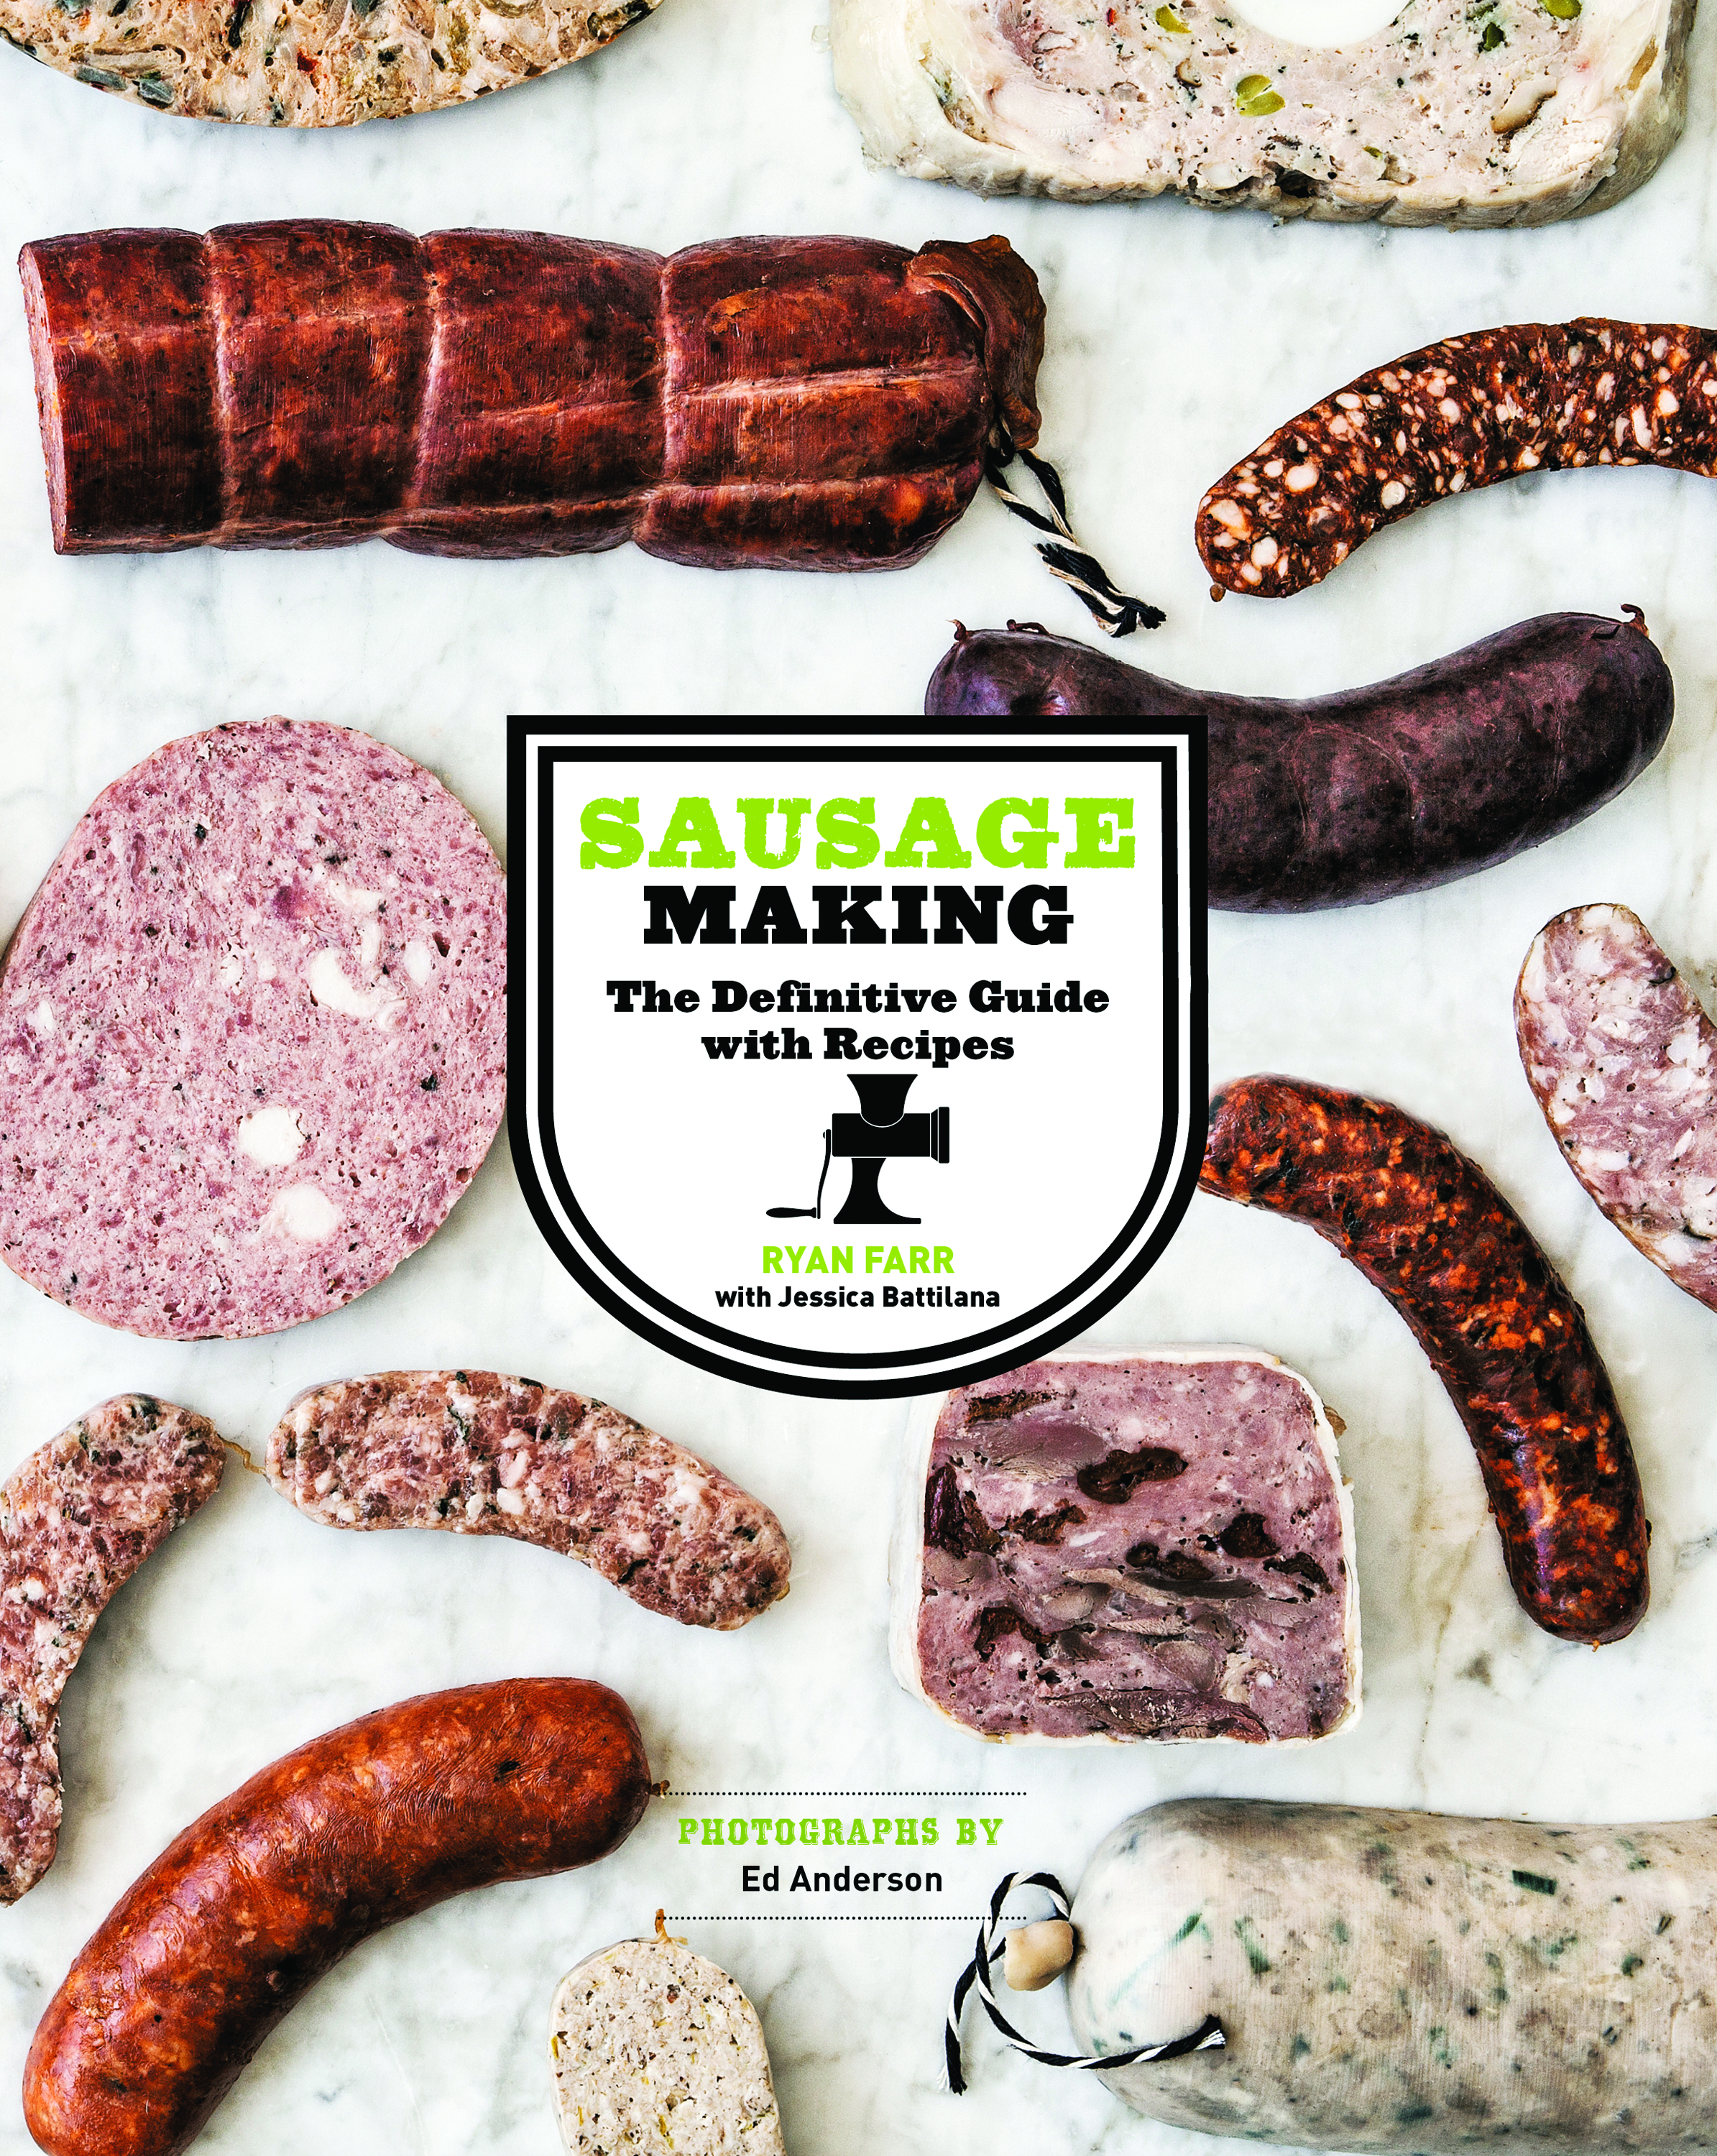 Sausage Making: The Definitive Guide Cookbook